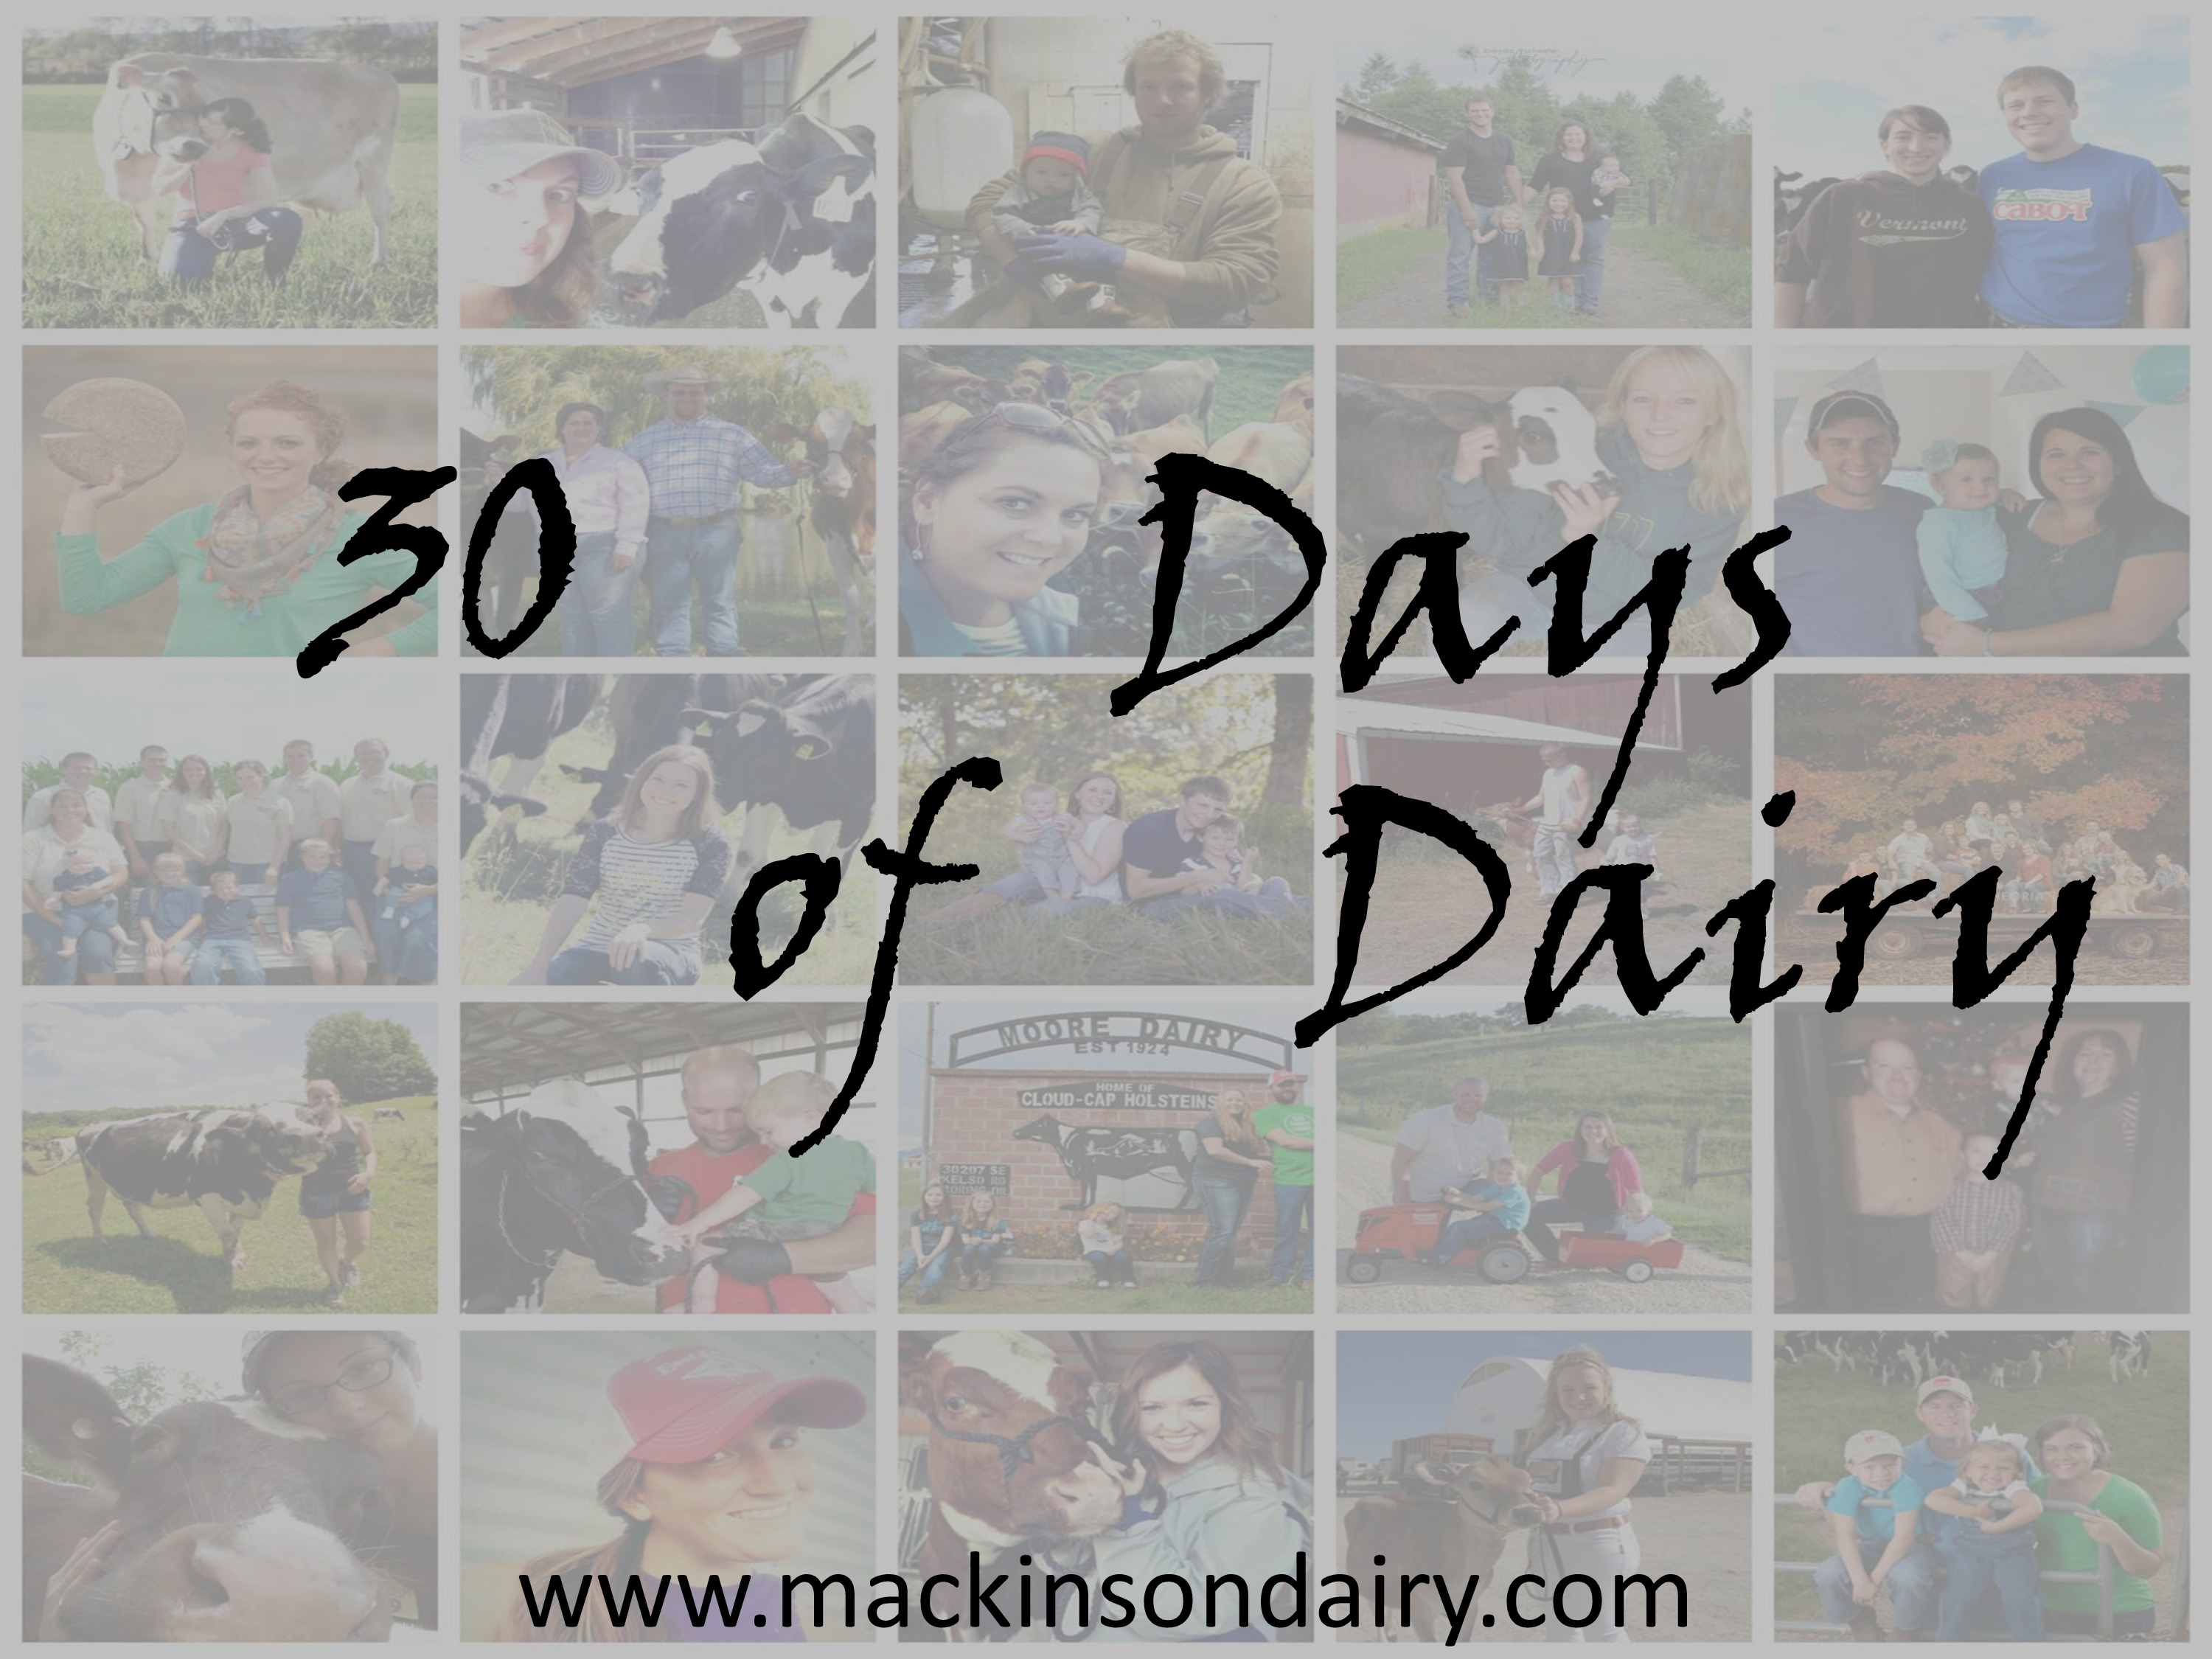 30 Days of Dairy Preview